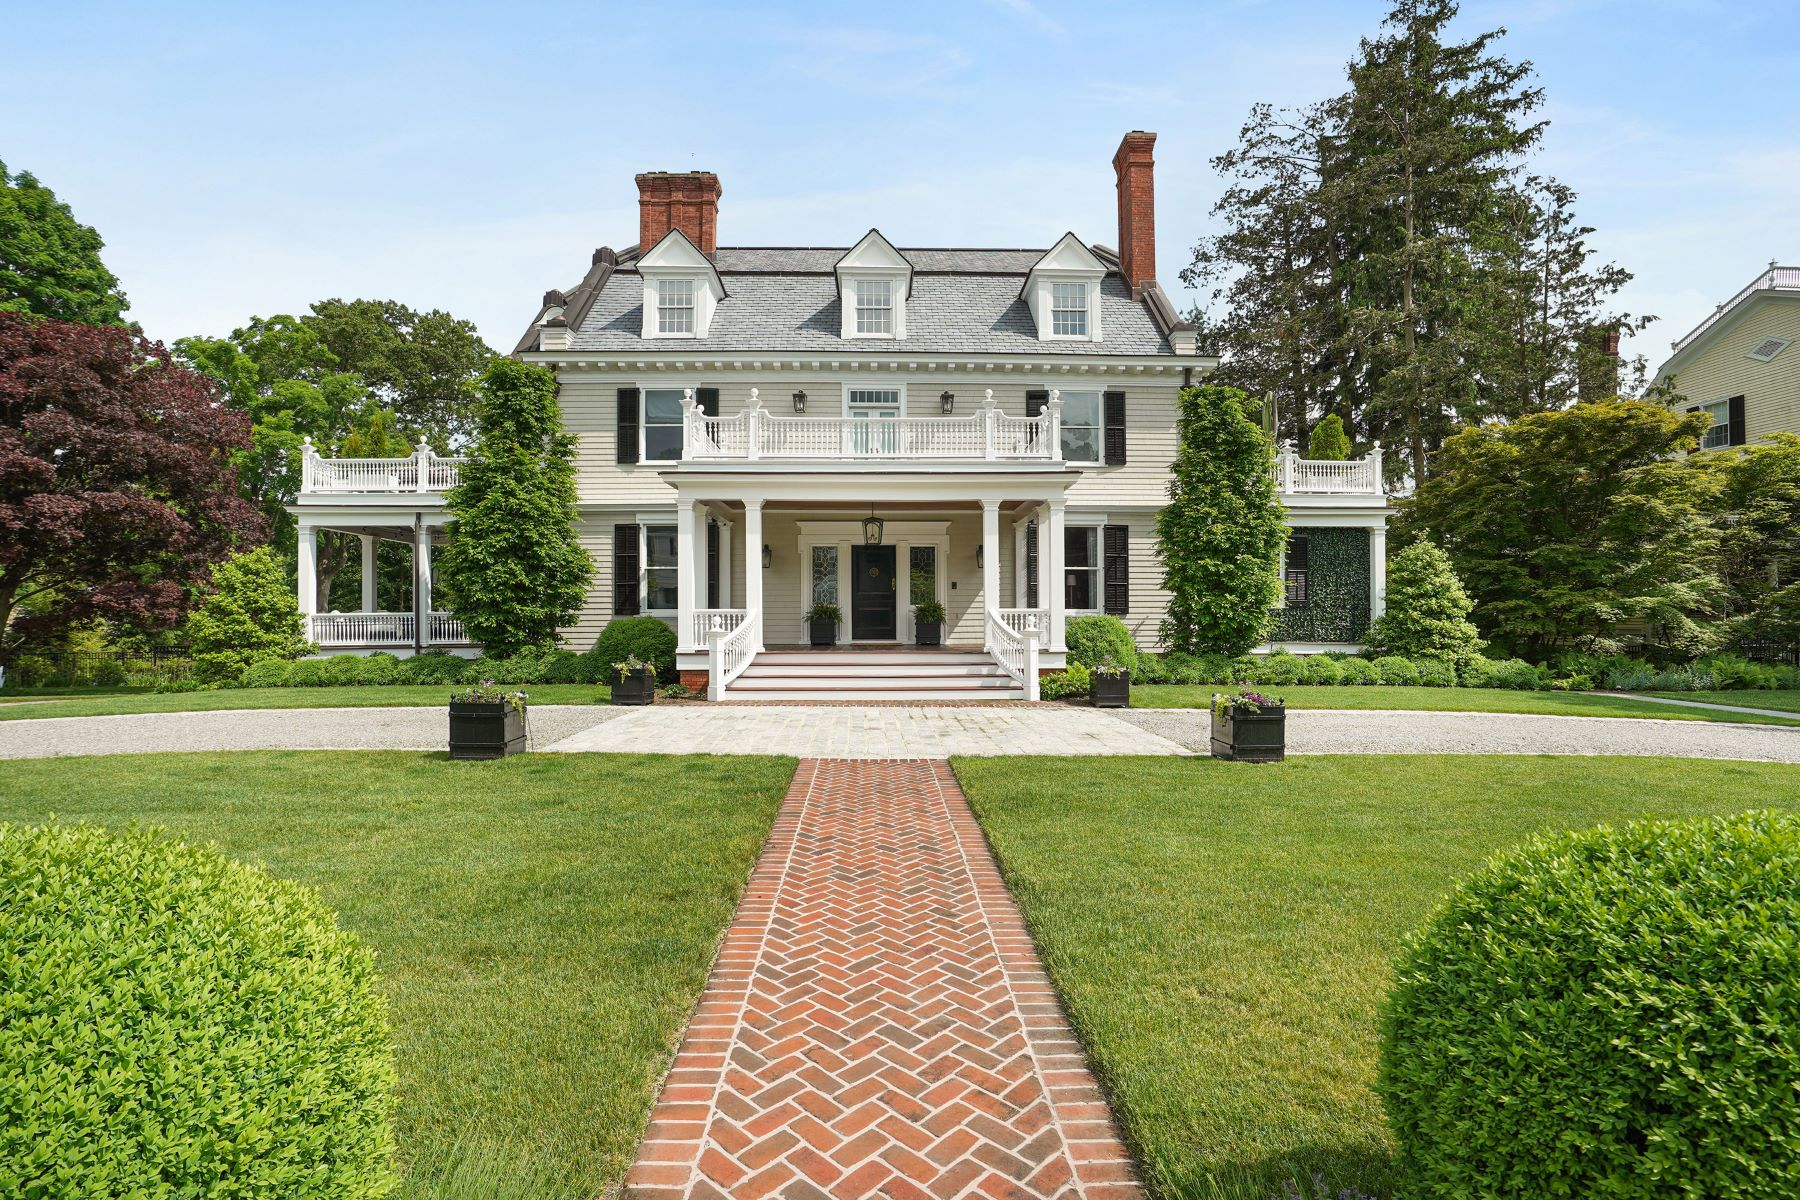 Single Family Homes for Active at A Journey Into A Sophisticated Lifestyle 76 Miller Road Morristown, New Jersey 07960 United States